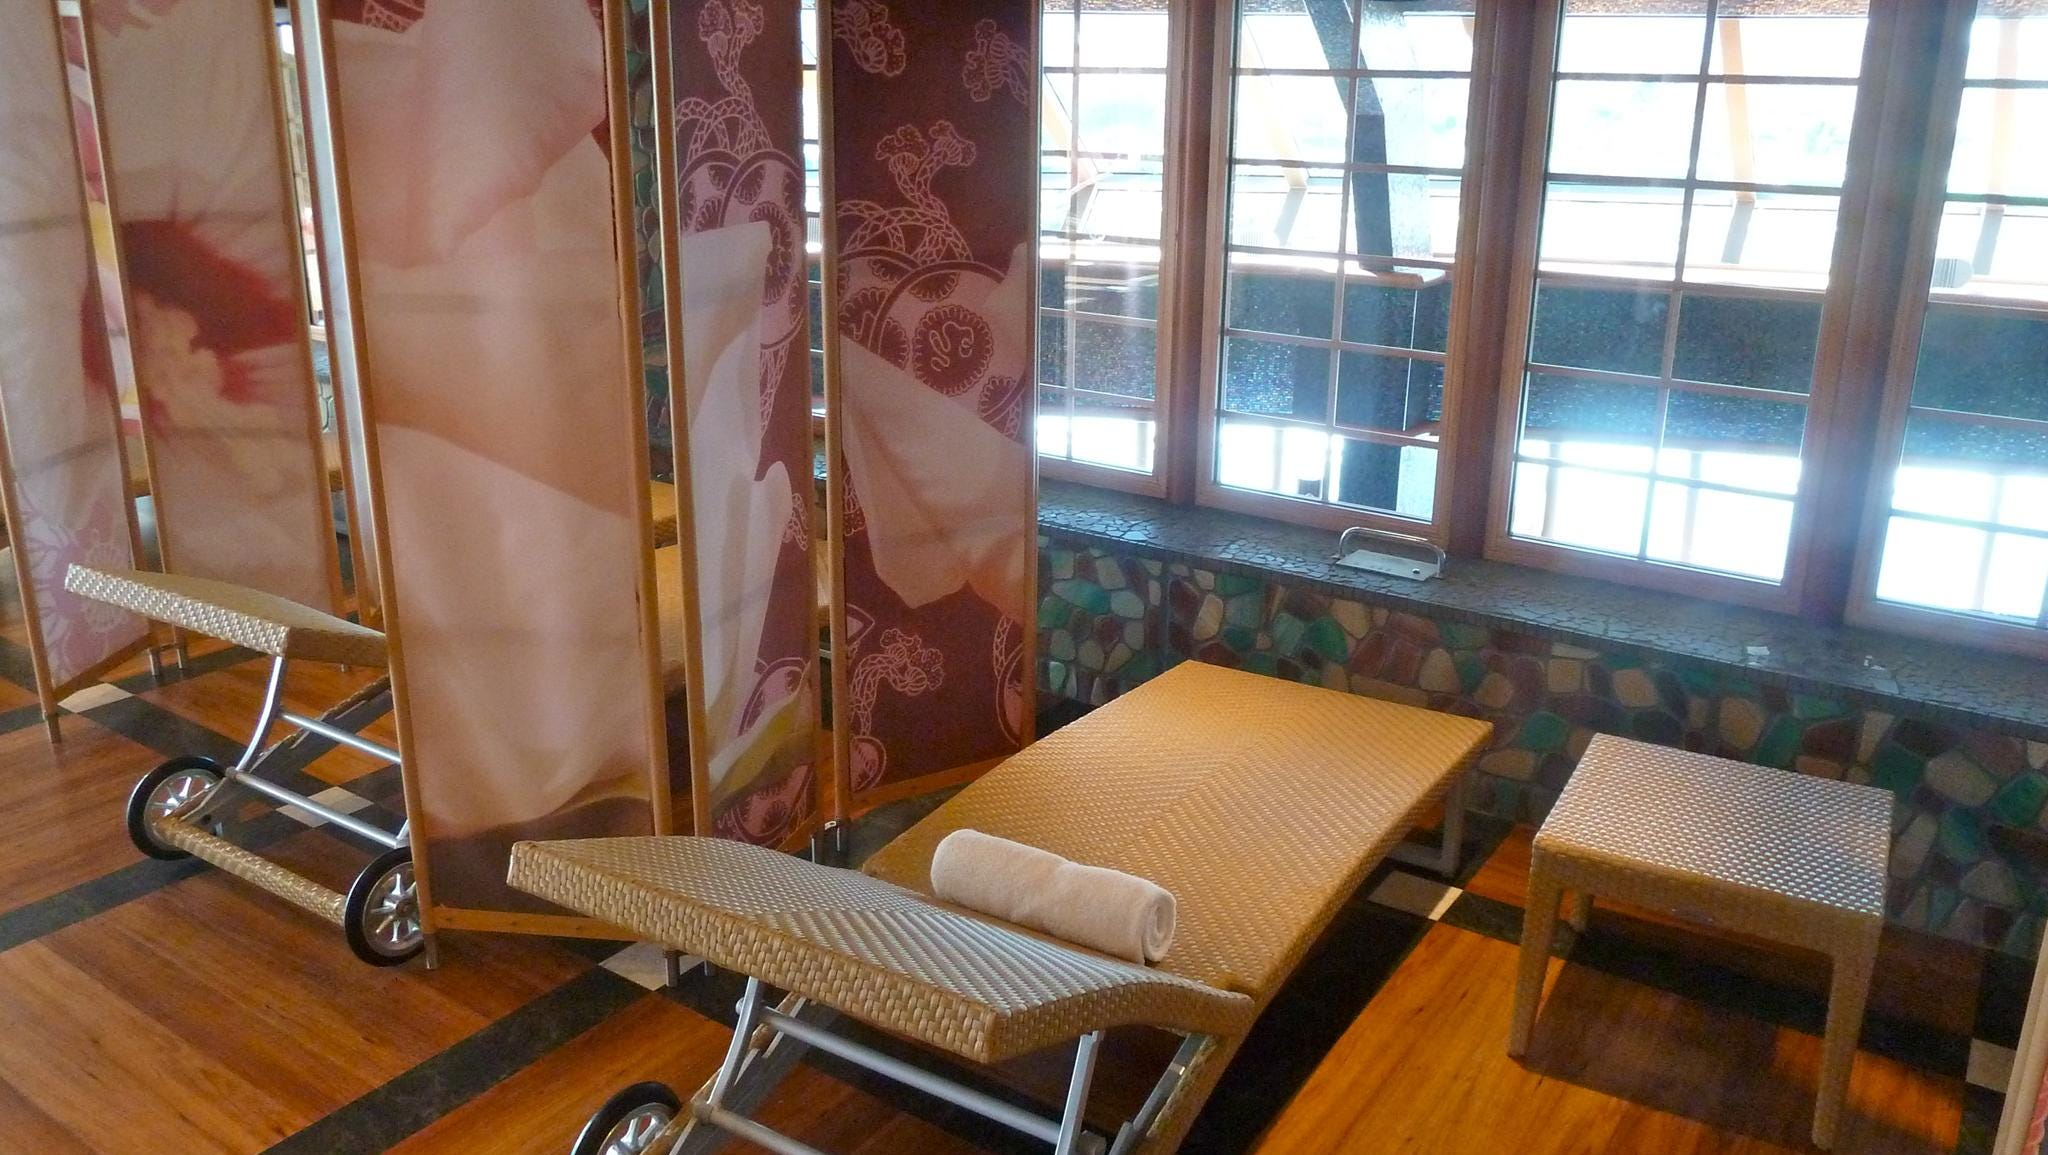 This is one of the tanning beds in the Samsara Spa's Solarium.